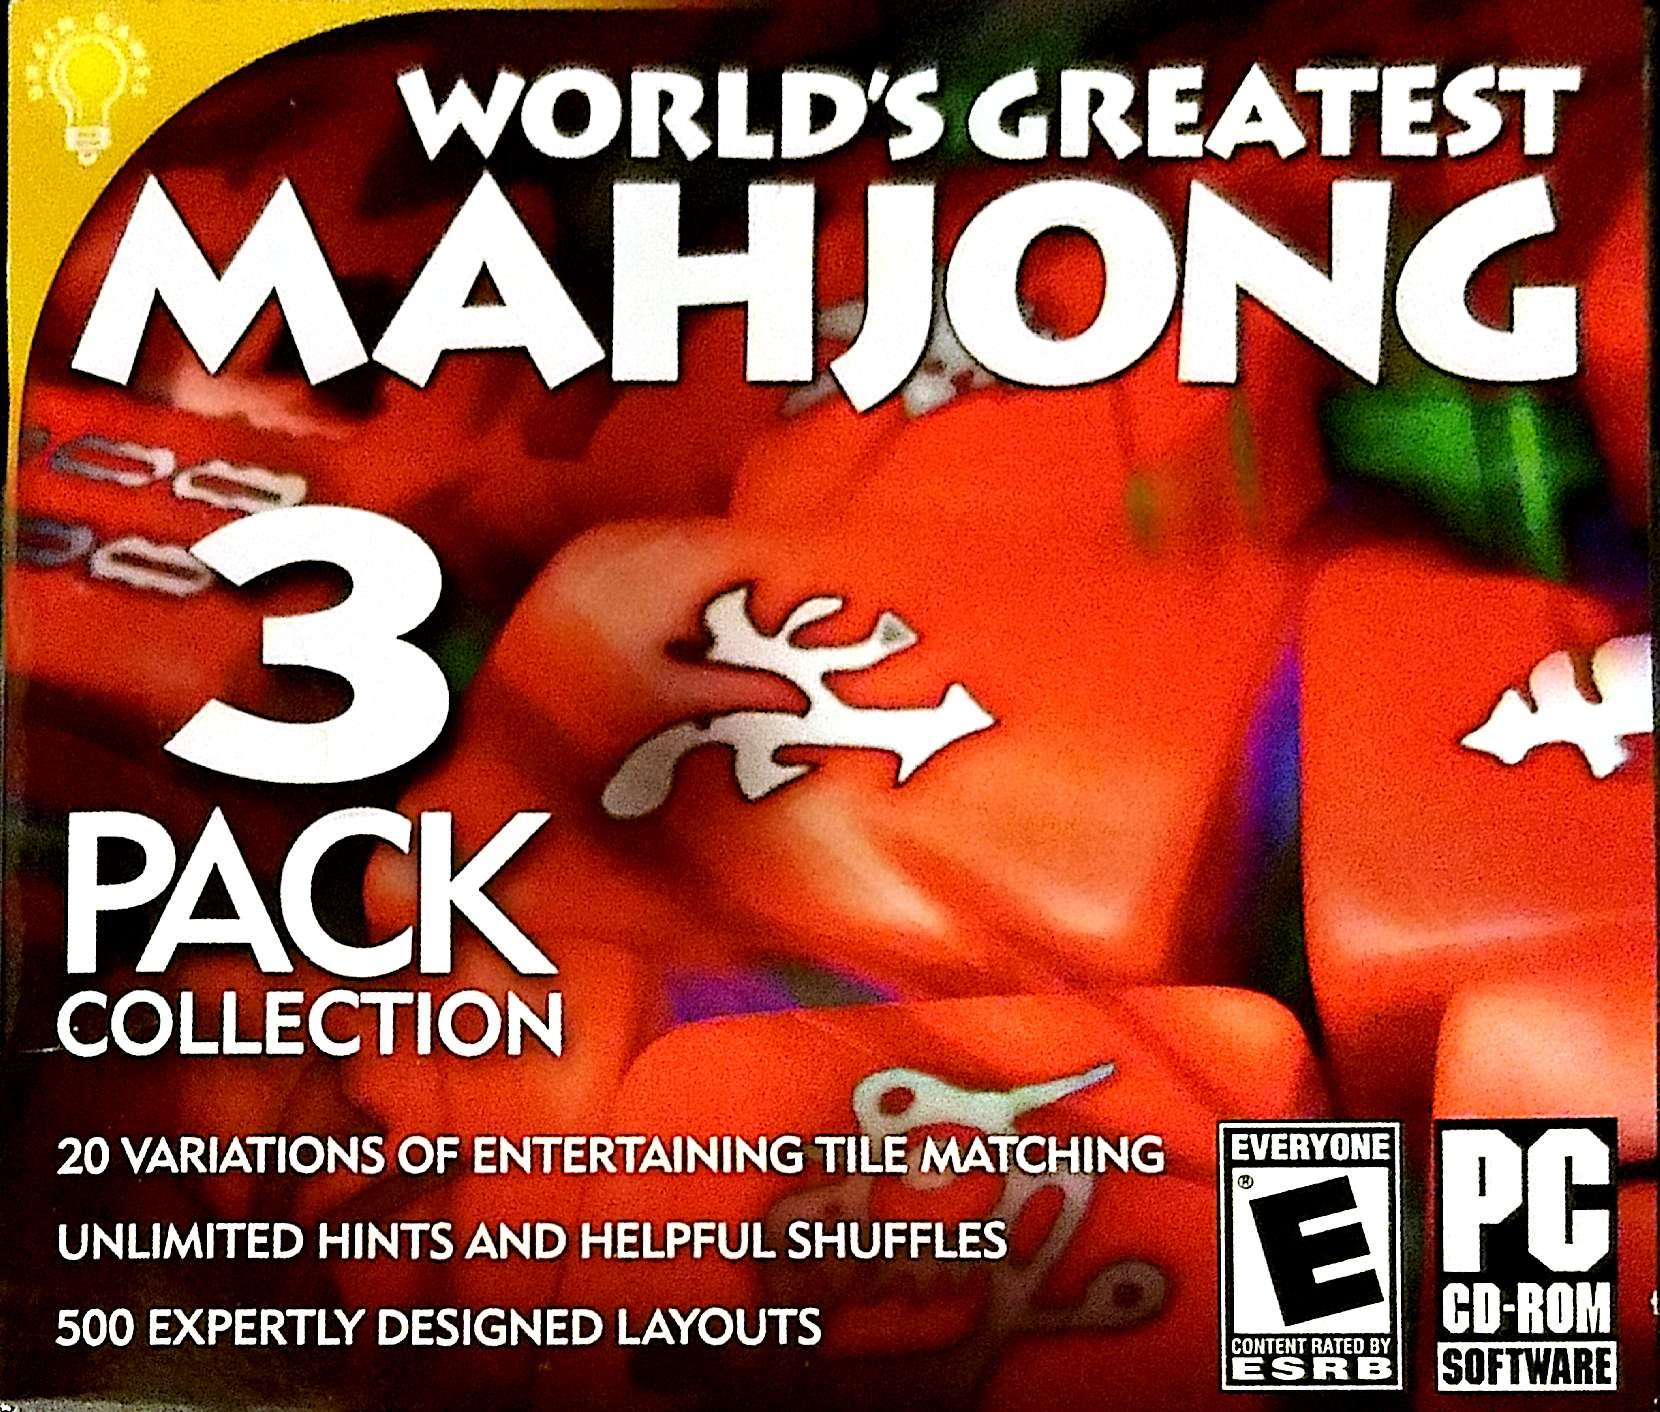 World's Greatest Mahjong: 3 Pack Collection